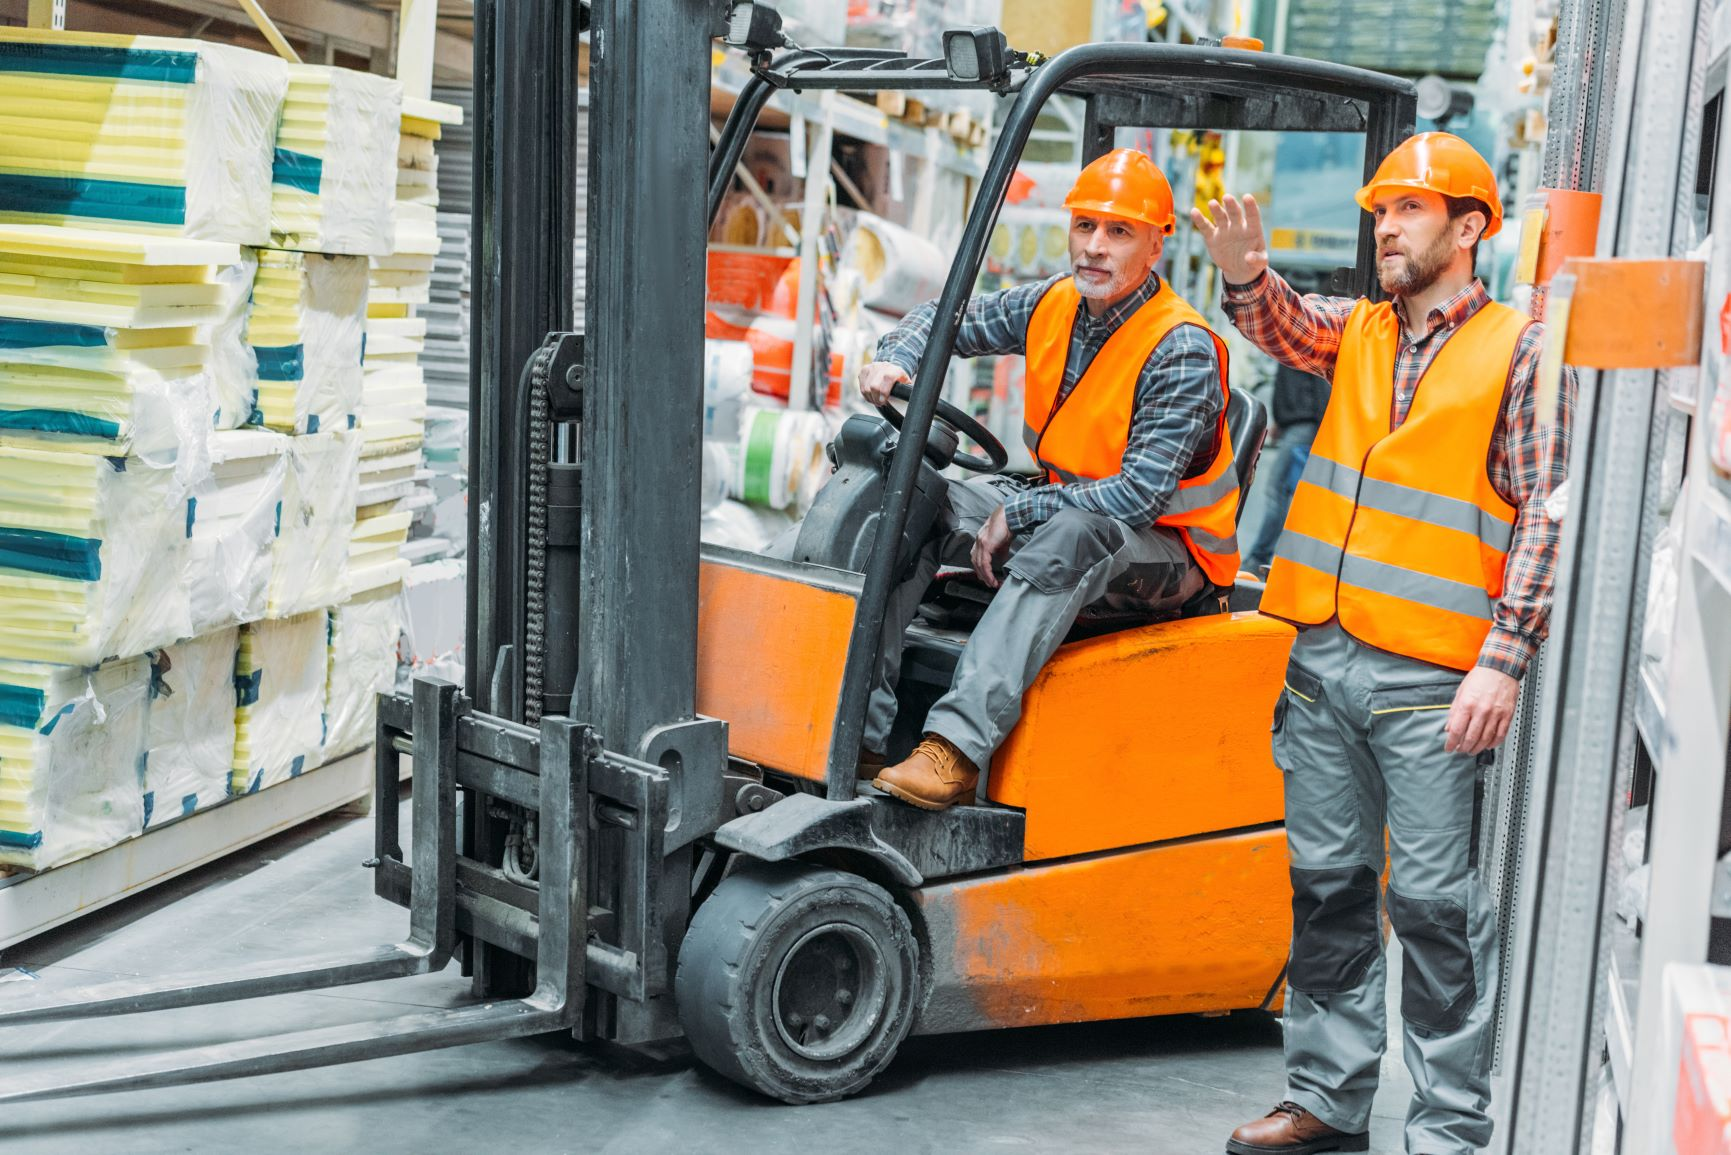 Forklift Pre-start Checklist - The safety, wellbeing & rehab experts